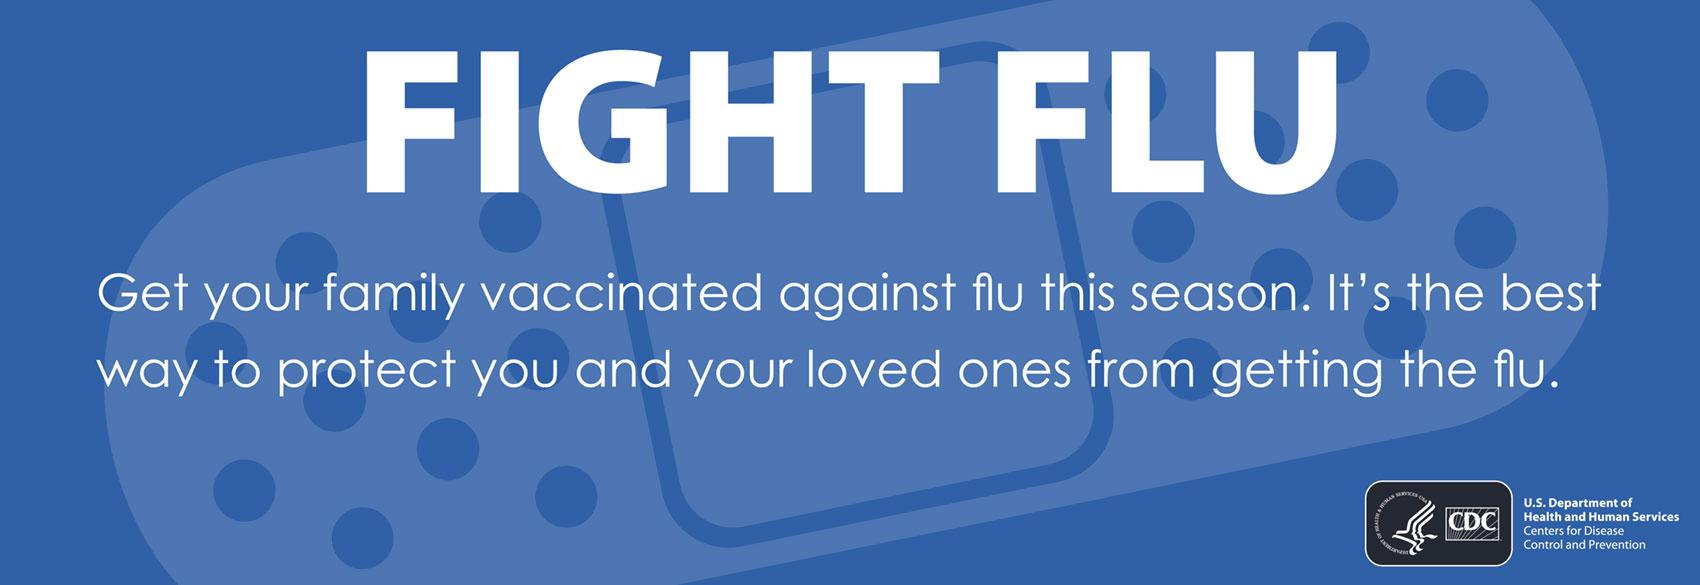 this year, take the fight to the flu!